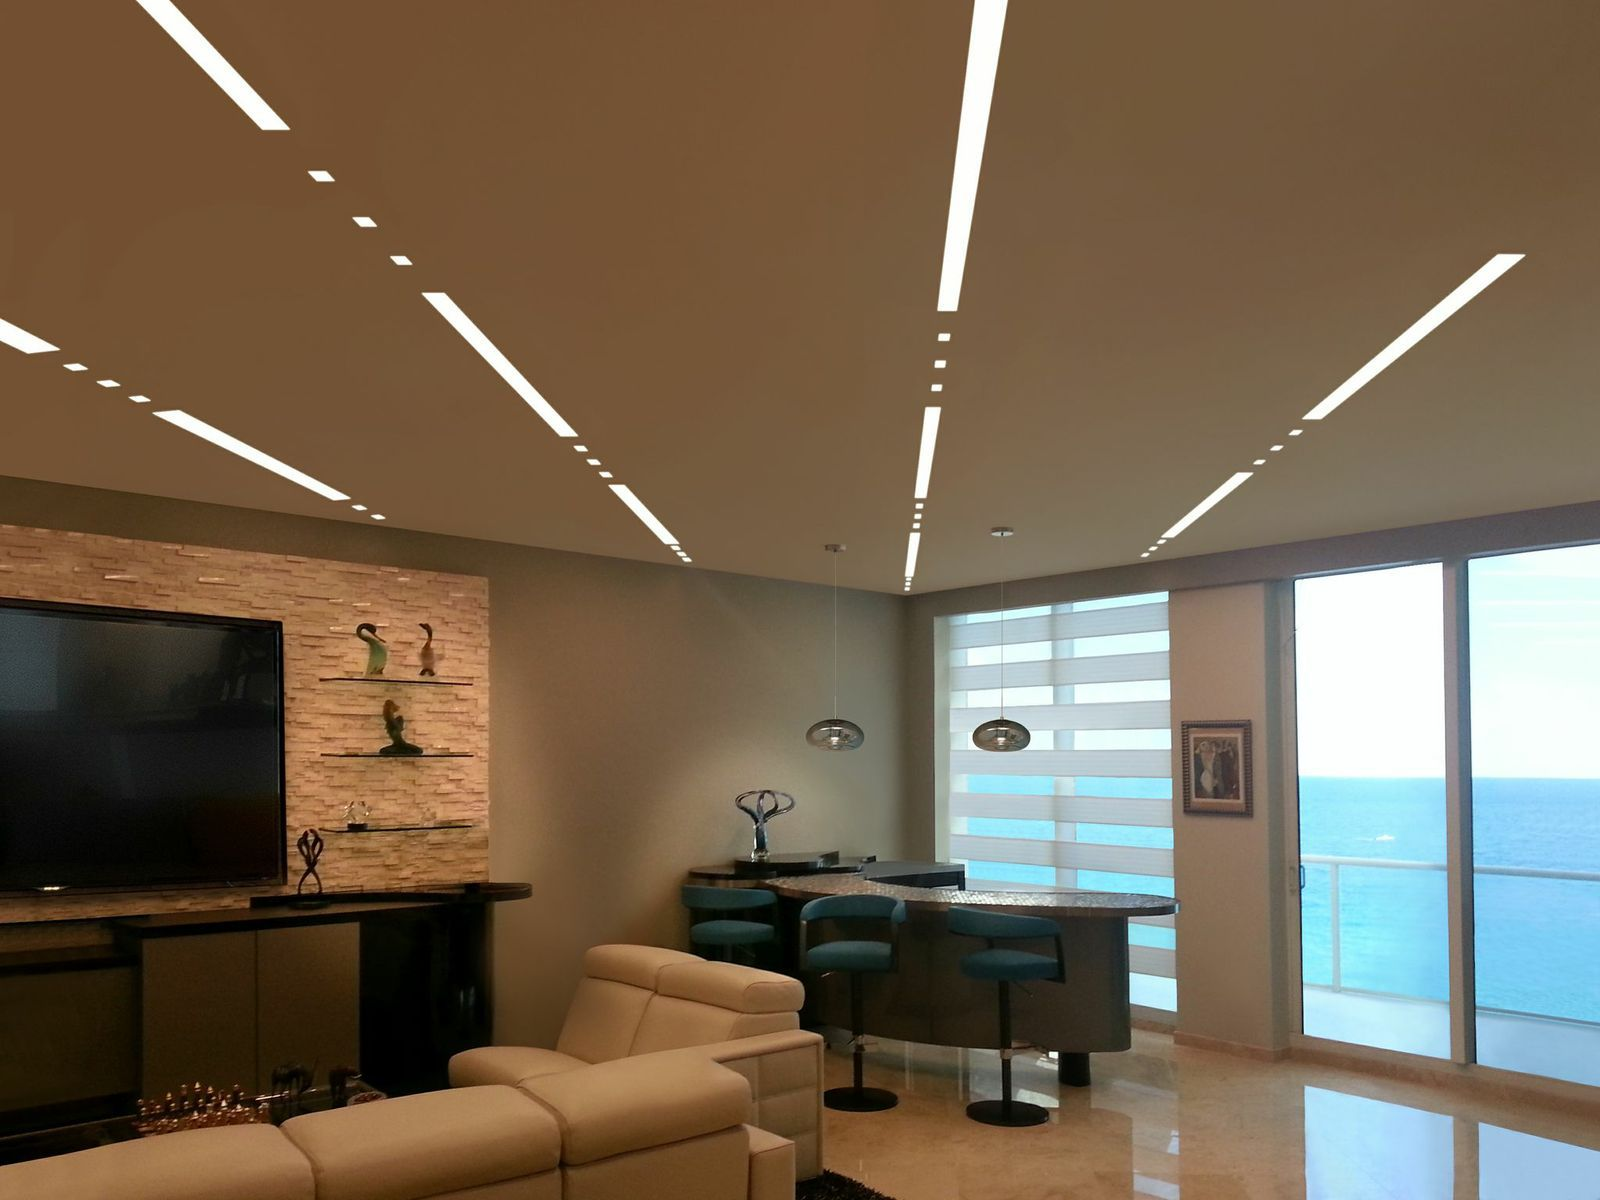 truline w vdc plasterin led system pure lighting iluminacin